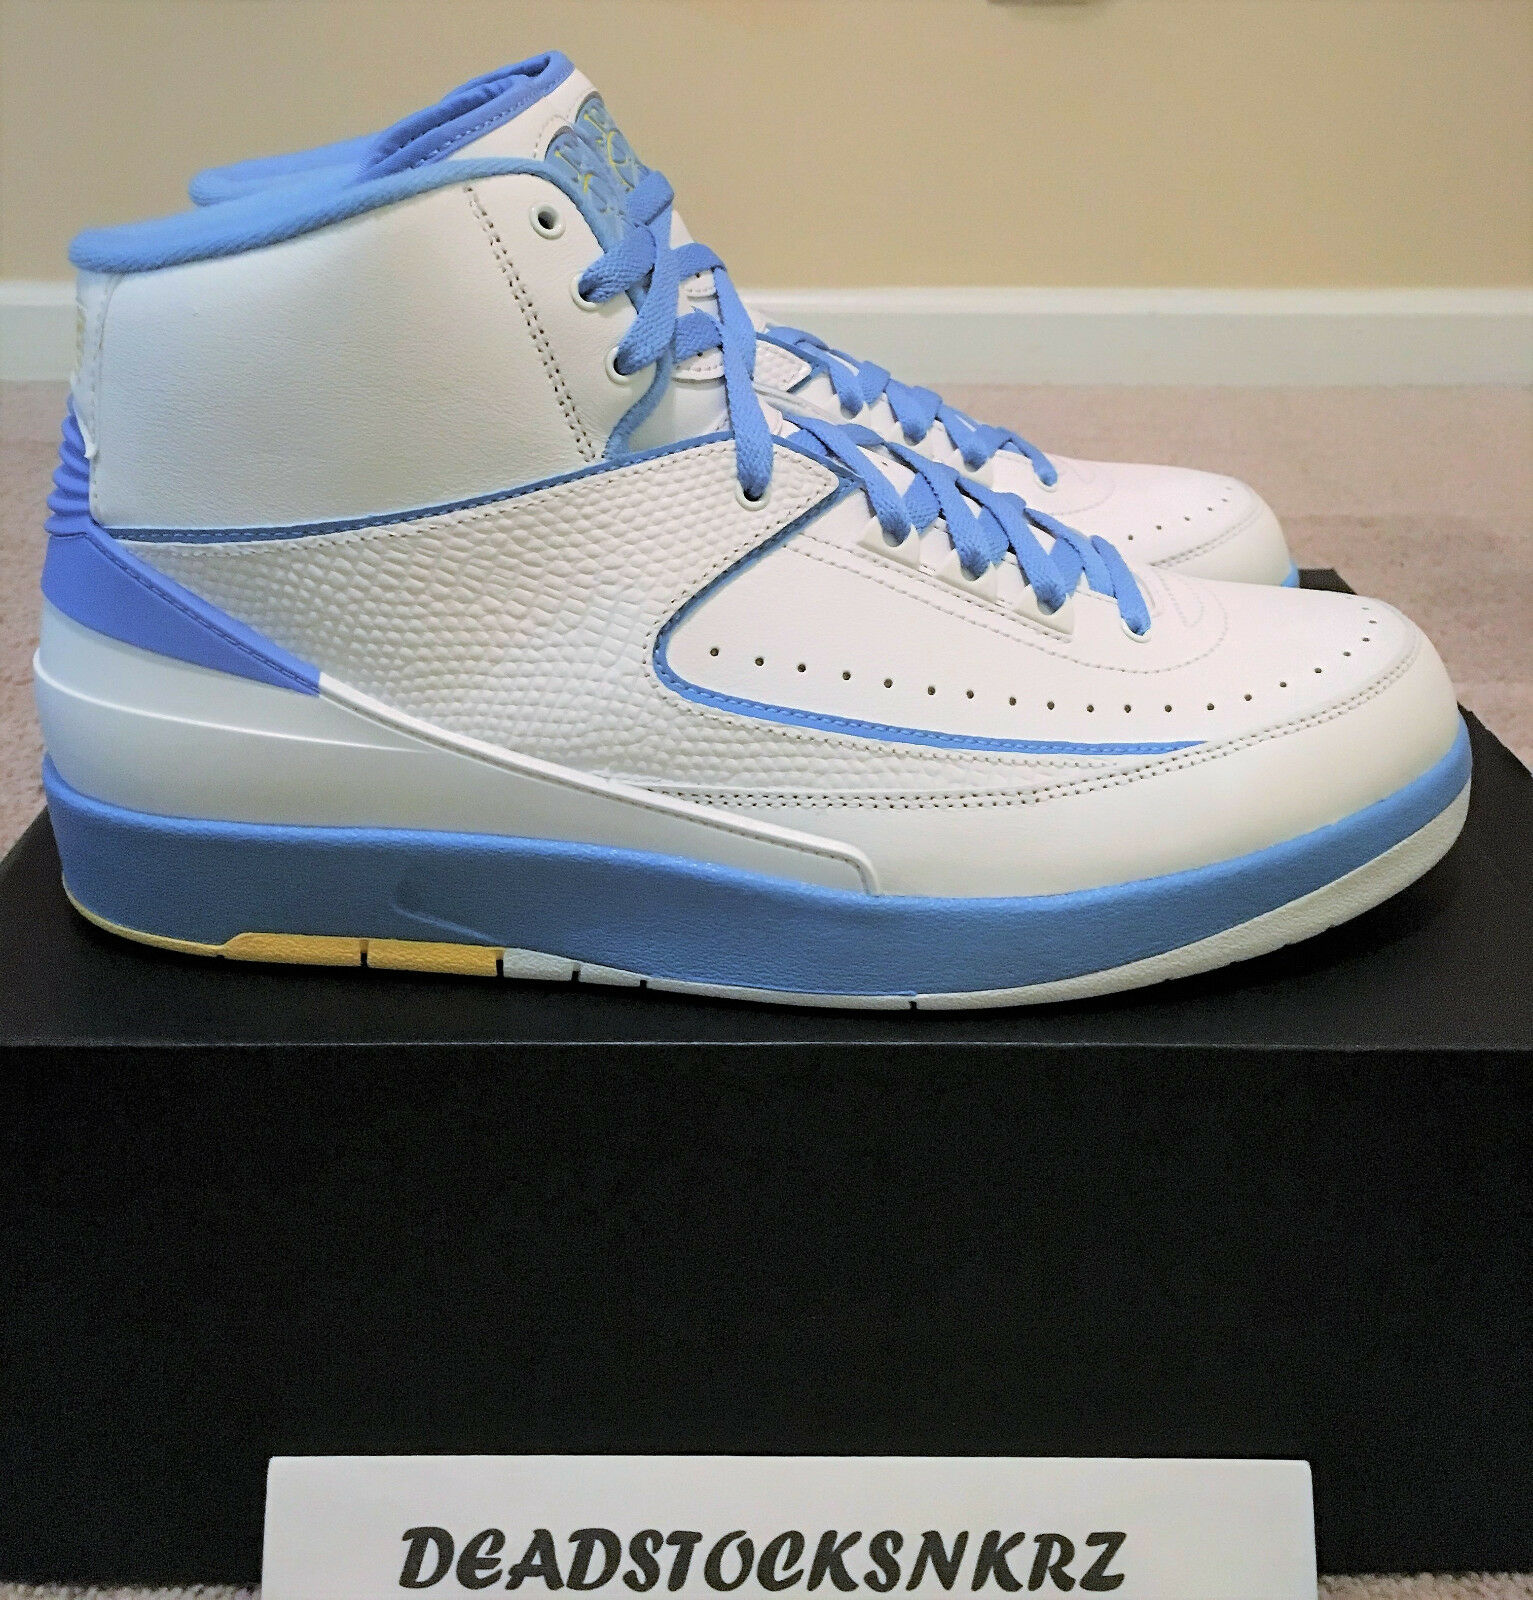 Nike Air Jordan 2 II Retro Melo White University bluee 385475 122 Size 10.5 & 12